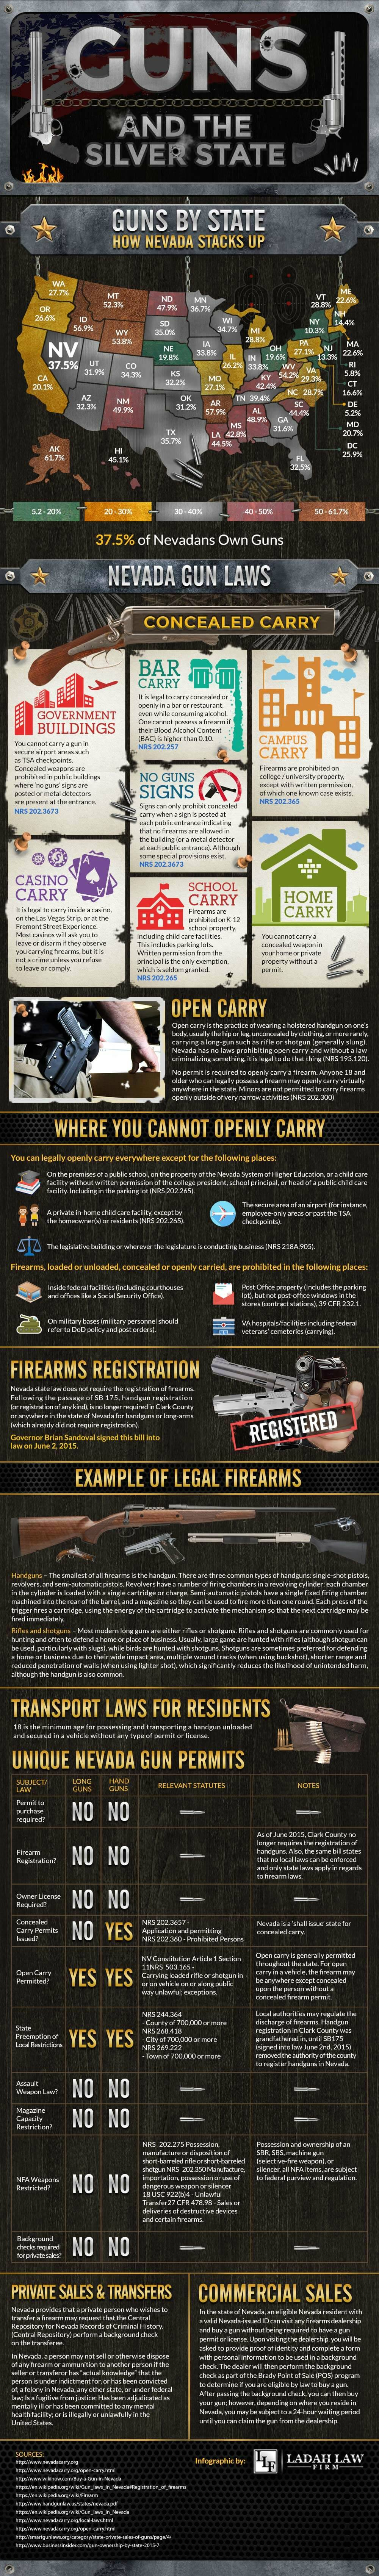 nevada-gun-laws-gun-ownership-by-state-infographic-s-n